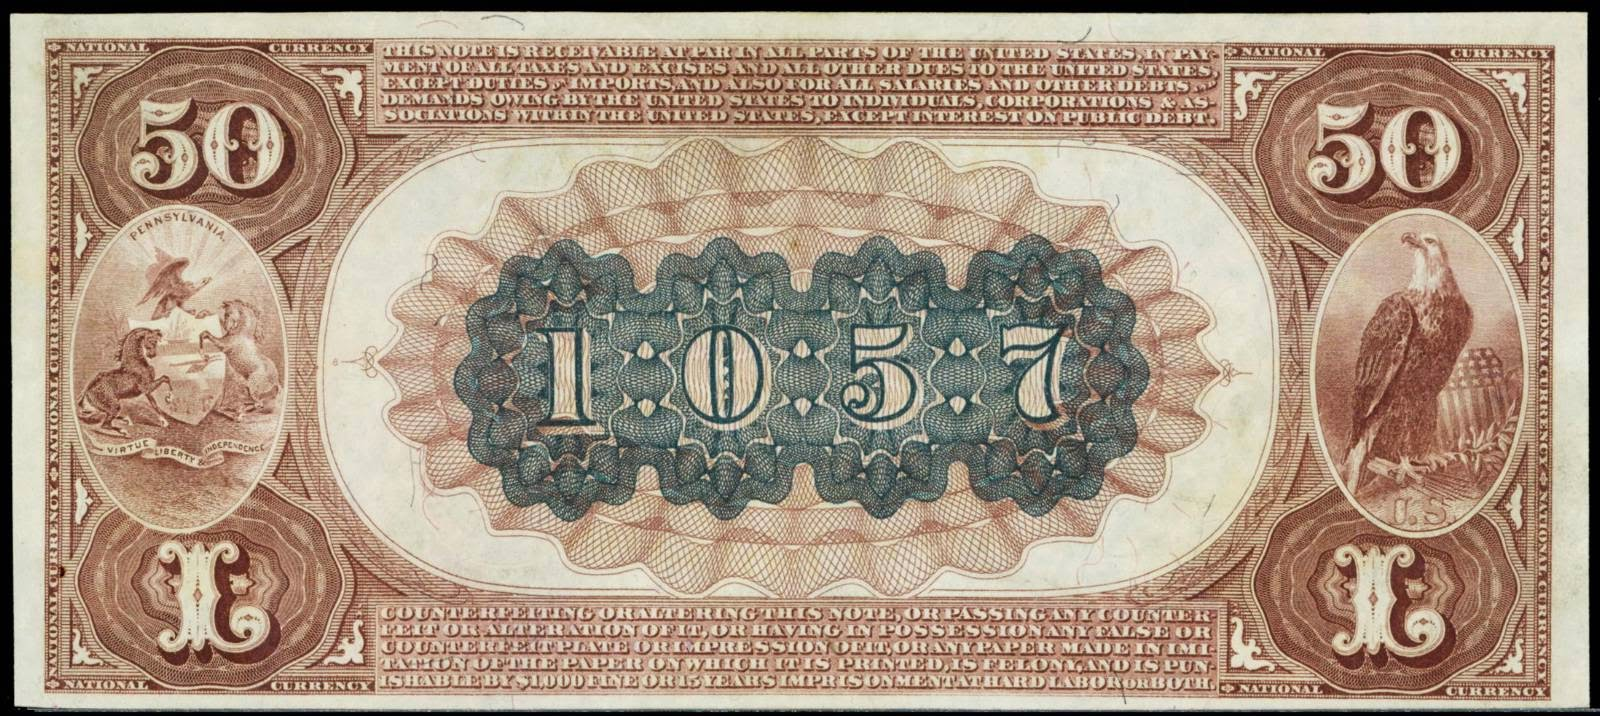 1882 Fifty Dollar Brown Back National currency banknotes